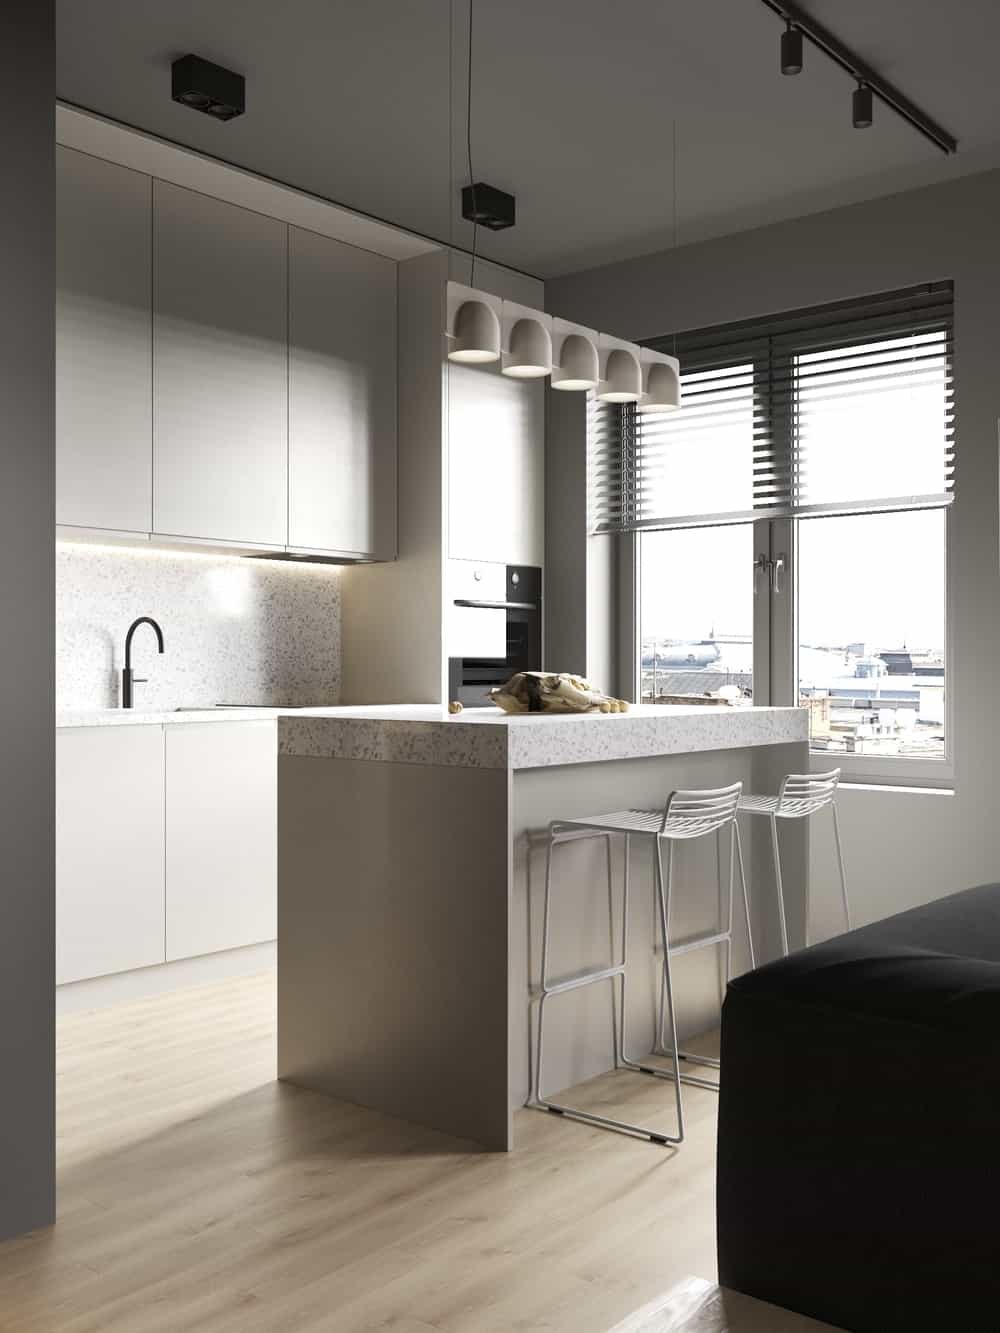 Kitchen in the Goose designed by Cartelle Design.